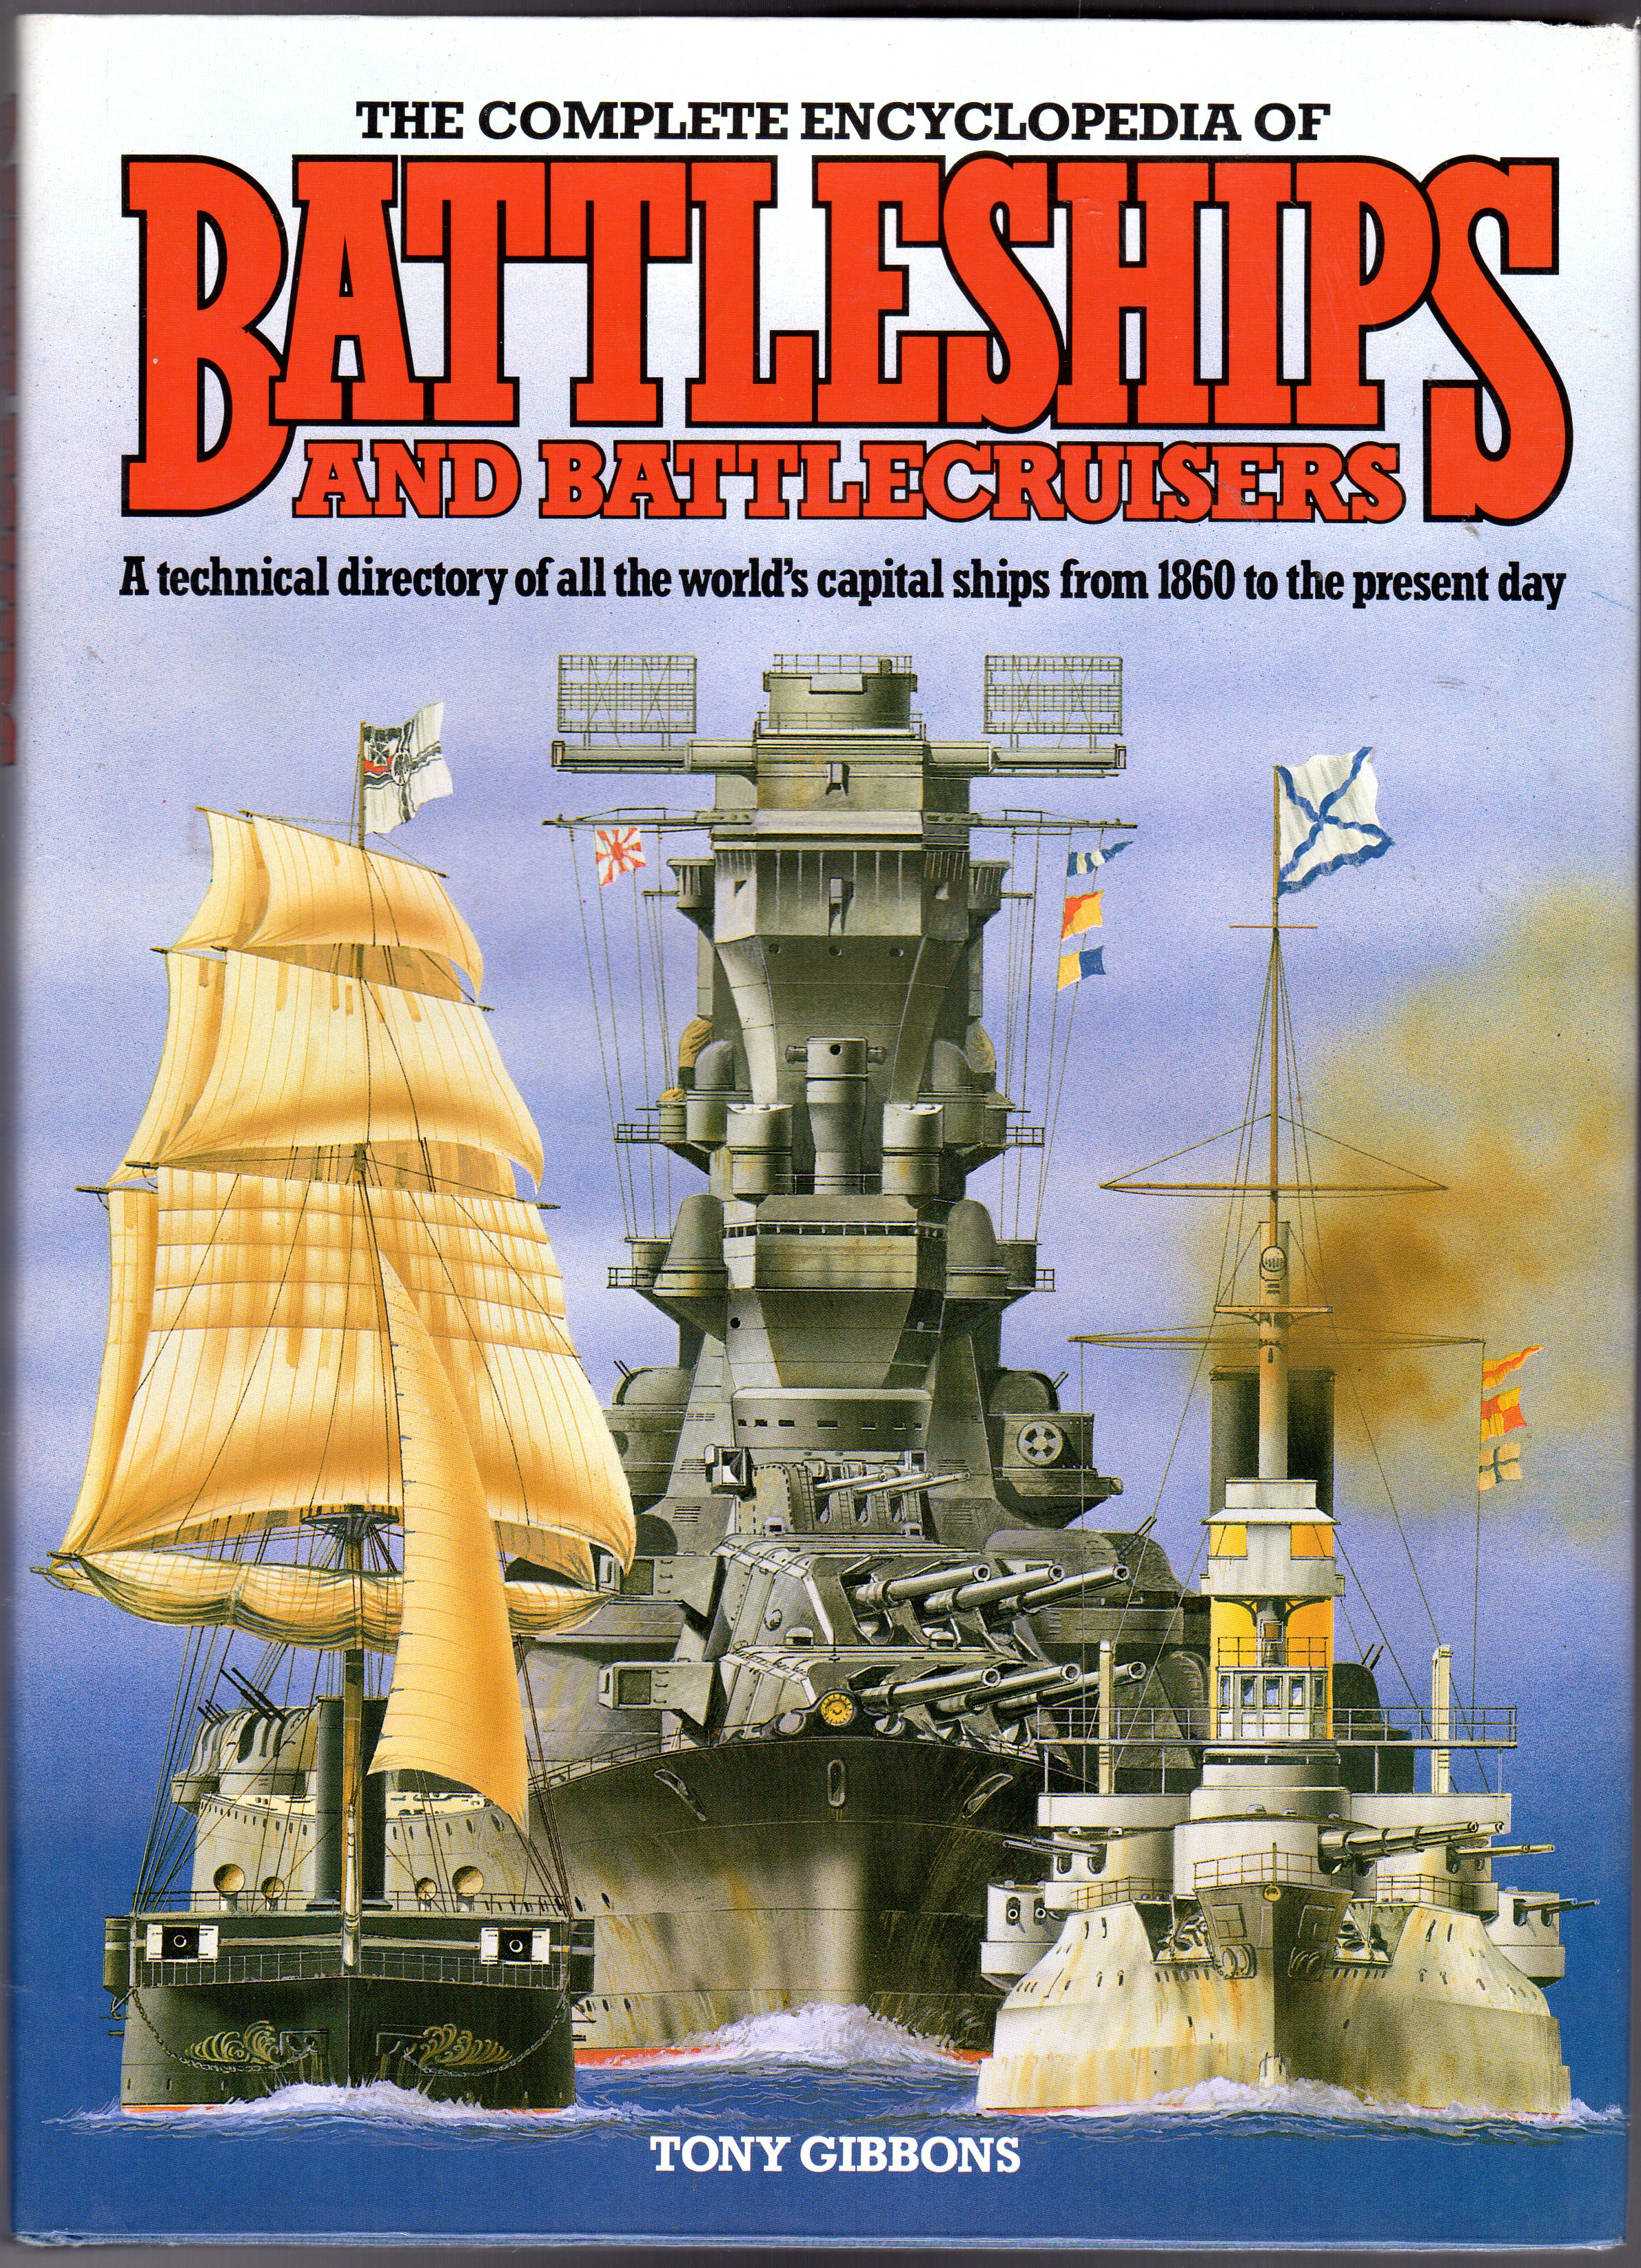 Image for The Complete Encyclopaedia of Battleships and Battlecruisers